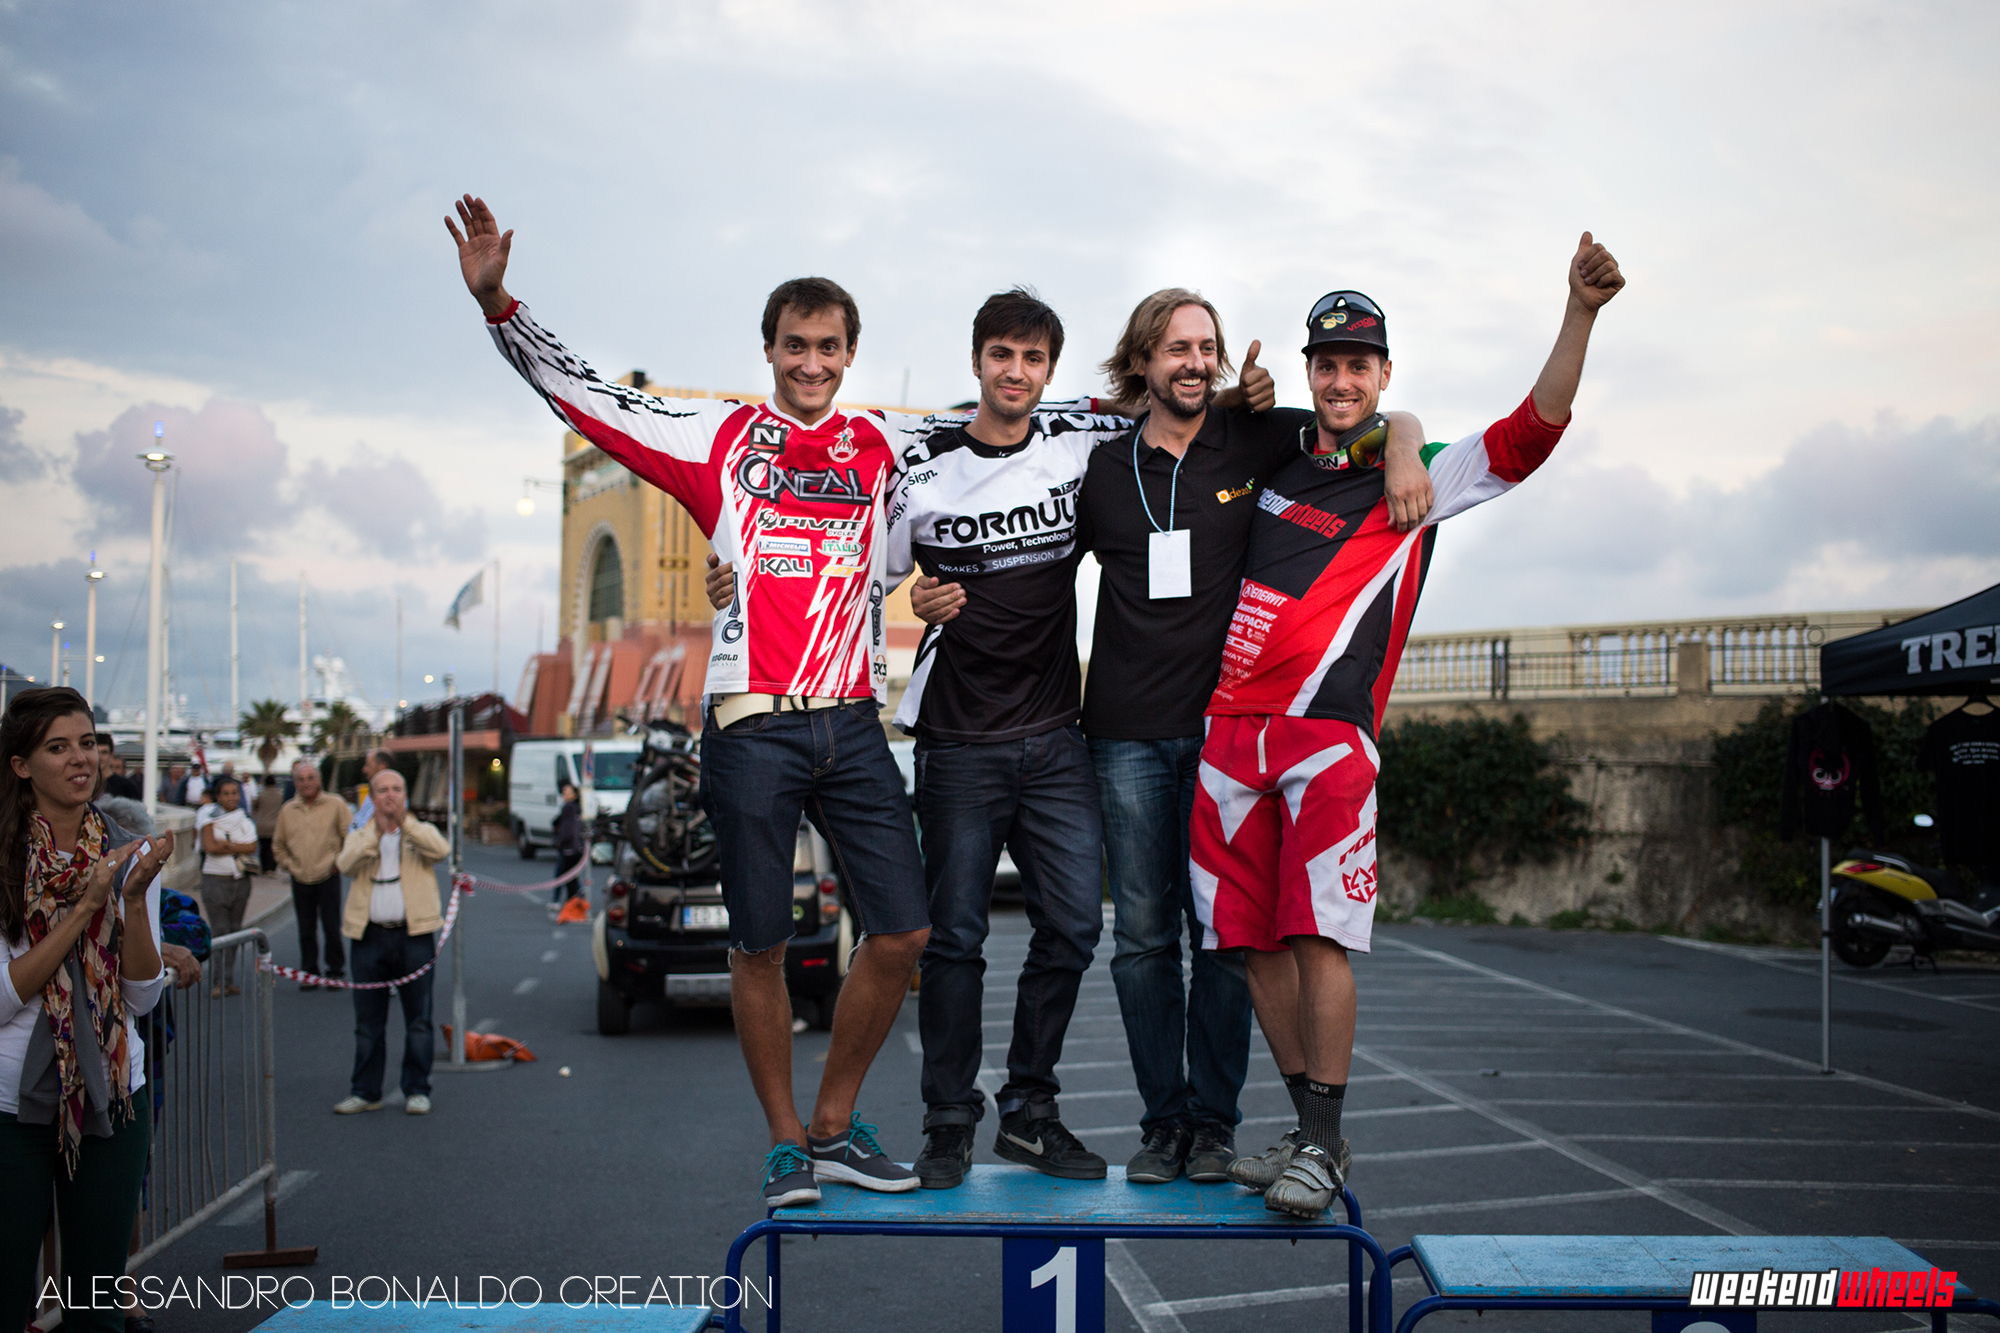 urban_downhill_imperia_2014_podio_assoluta